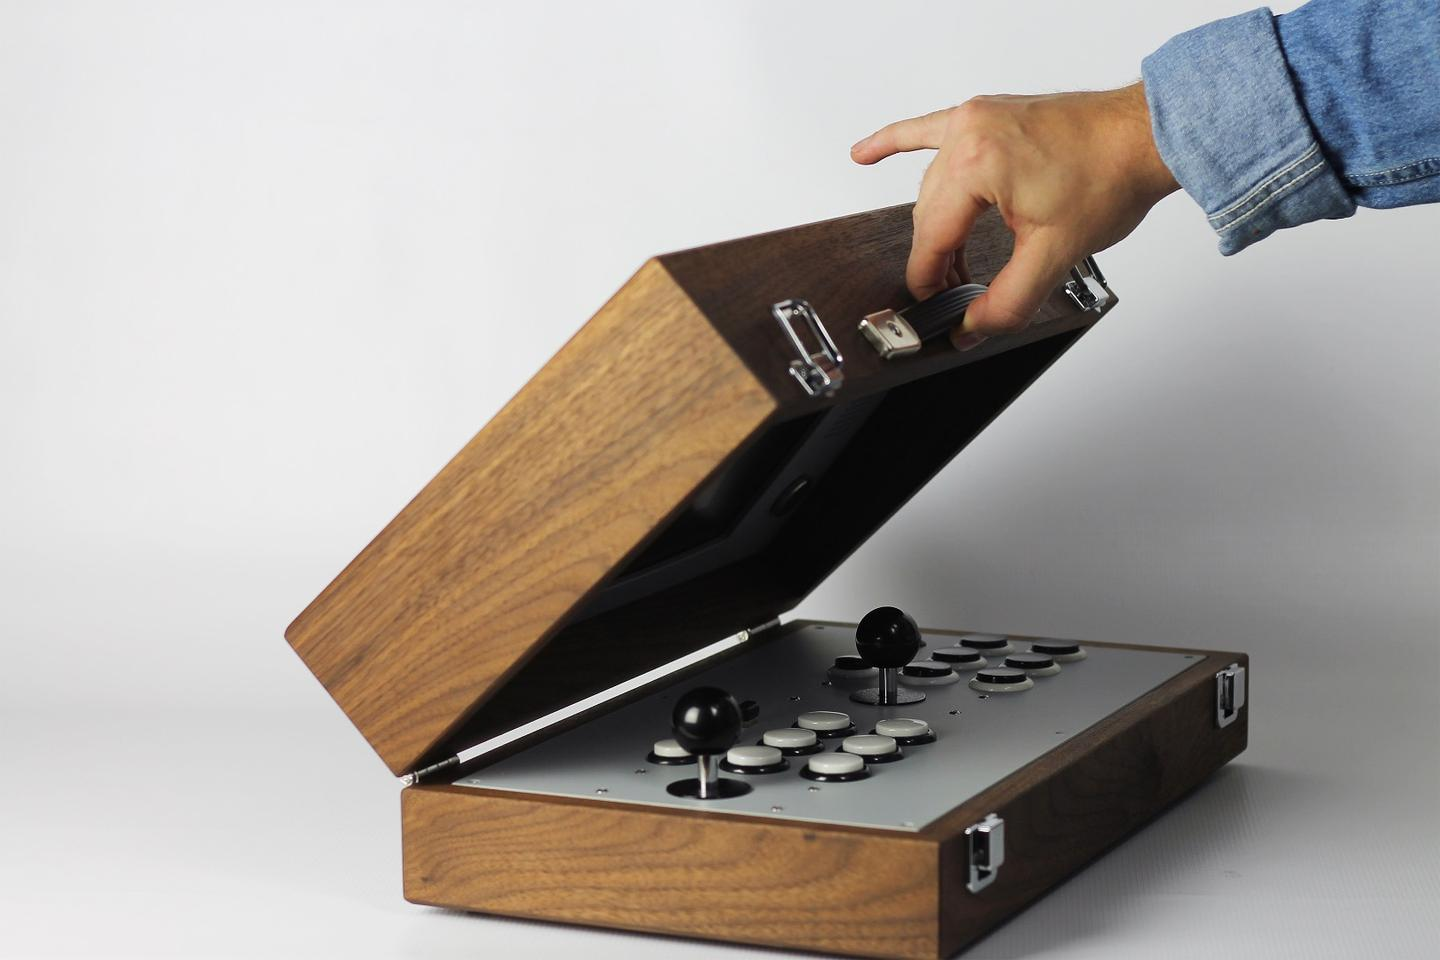 The Cary42: A two-player game console in a handmade wood case that comes with 100 games pre-installed,but can be loaded with up to 10,000 emulated games